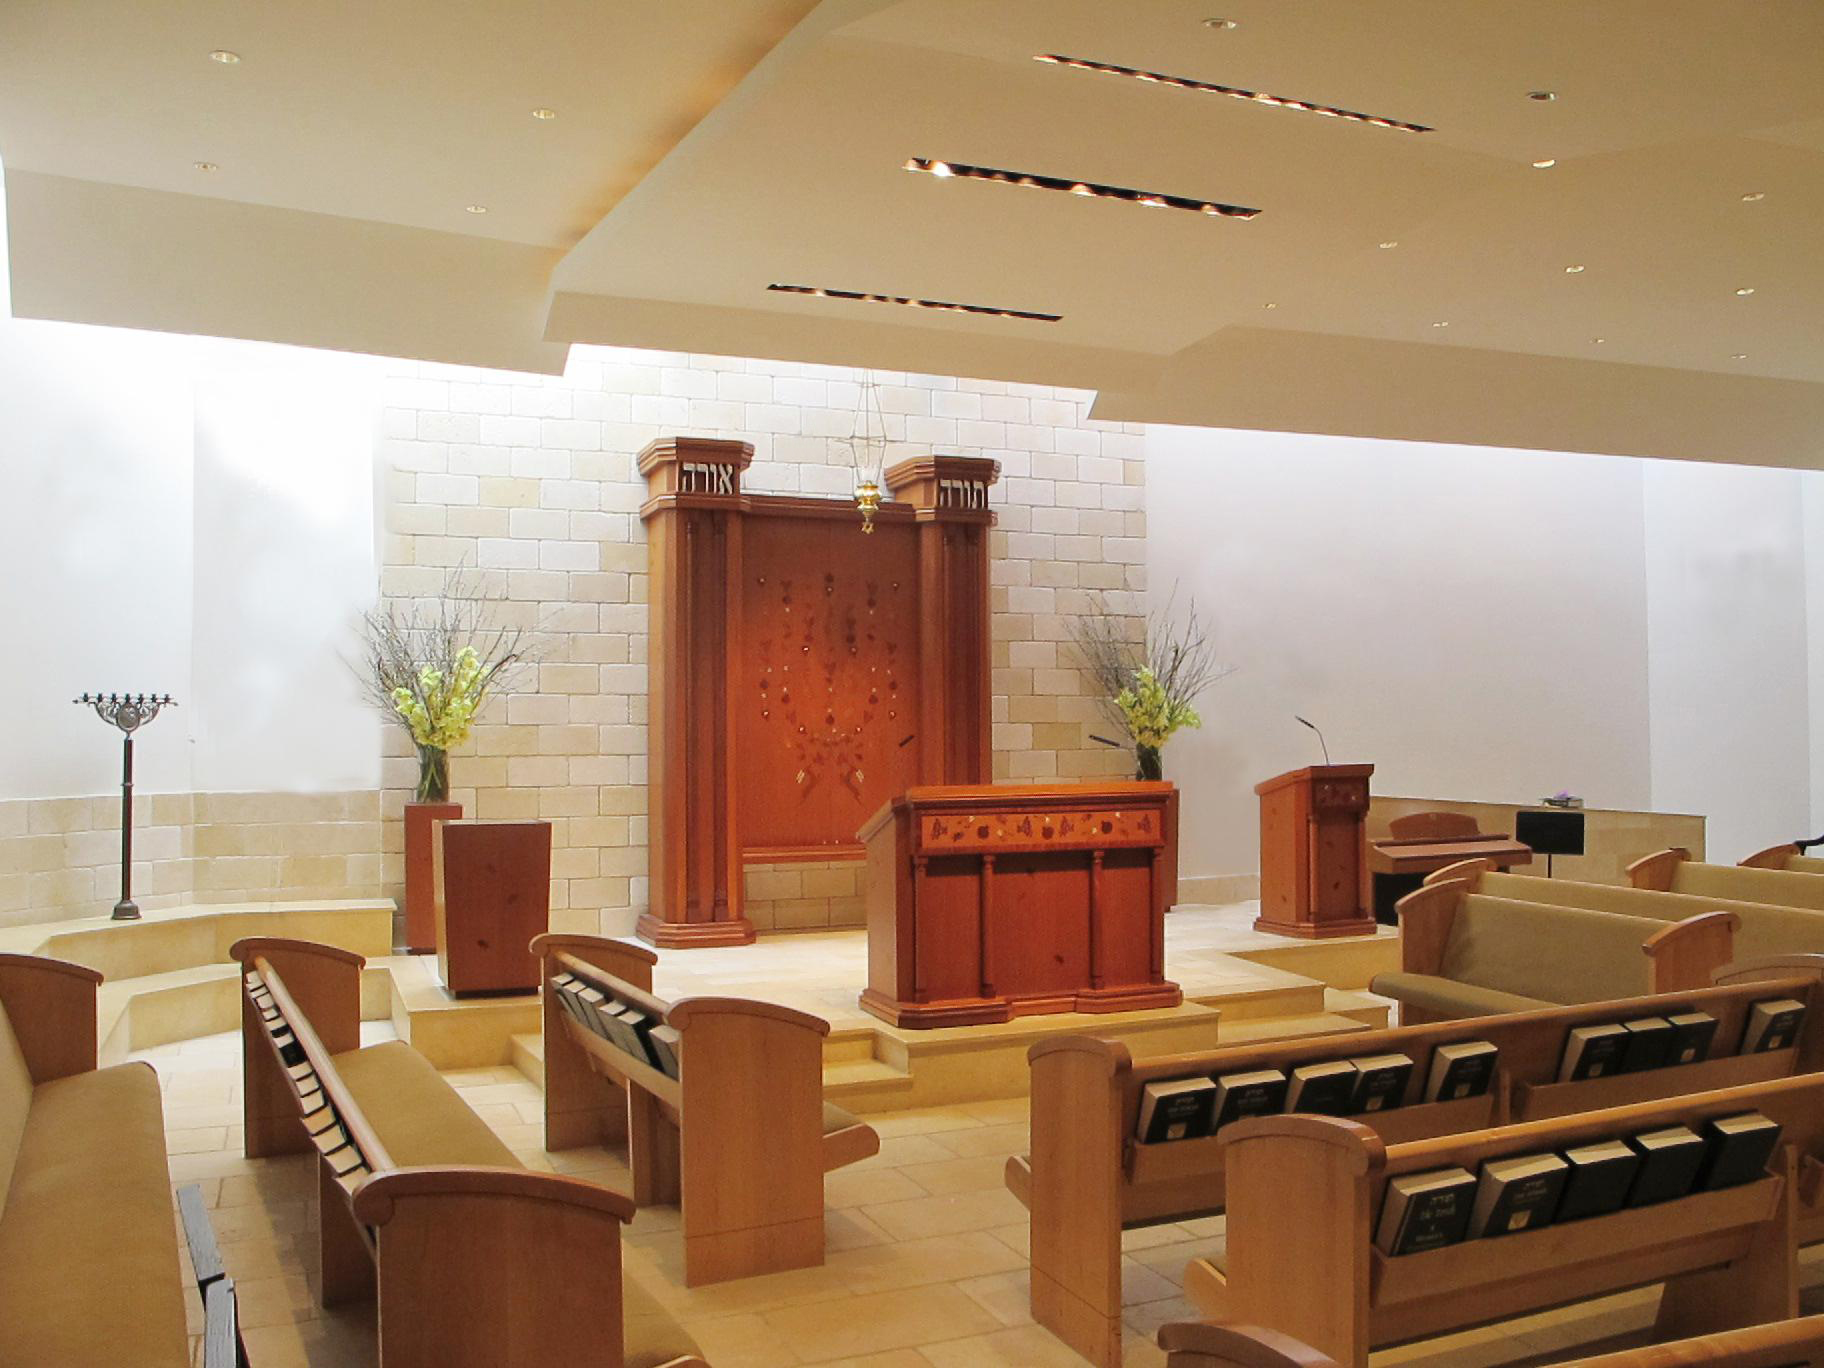 SYNAGOGUE DESIGN - Elegant Bimah furniture and art, interior synagogue design, stained glass and fine collectible Judaic objects.Clients experience absolute commitment. Our background in fine arts and regard for high quality are a critical consideration when comparing Studio Gruss to other firms involved in Synagogue design.